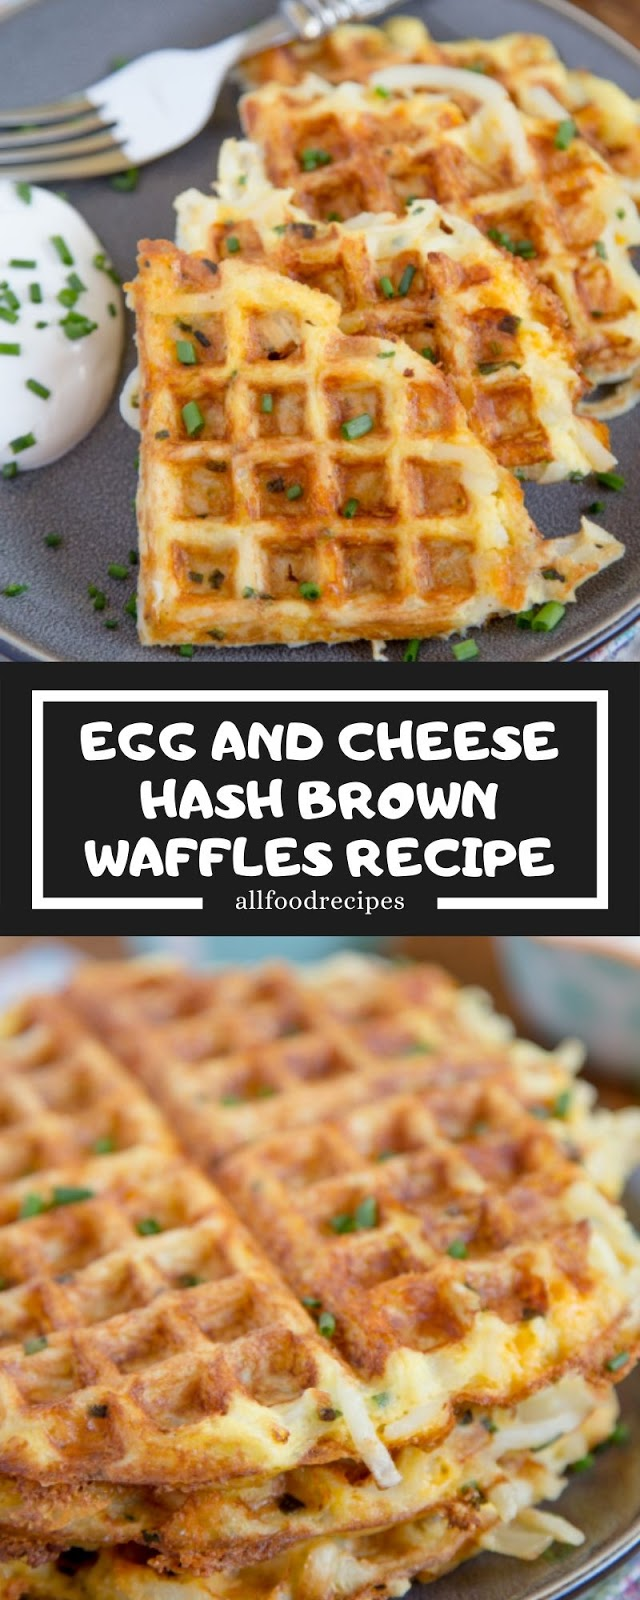 EGG AND CHEESE HASH BROWN WAFFLES RECIPE